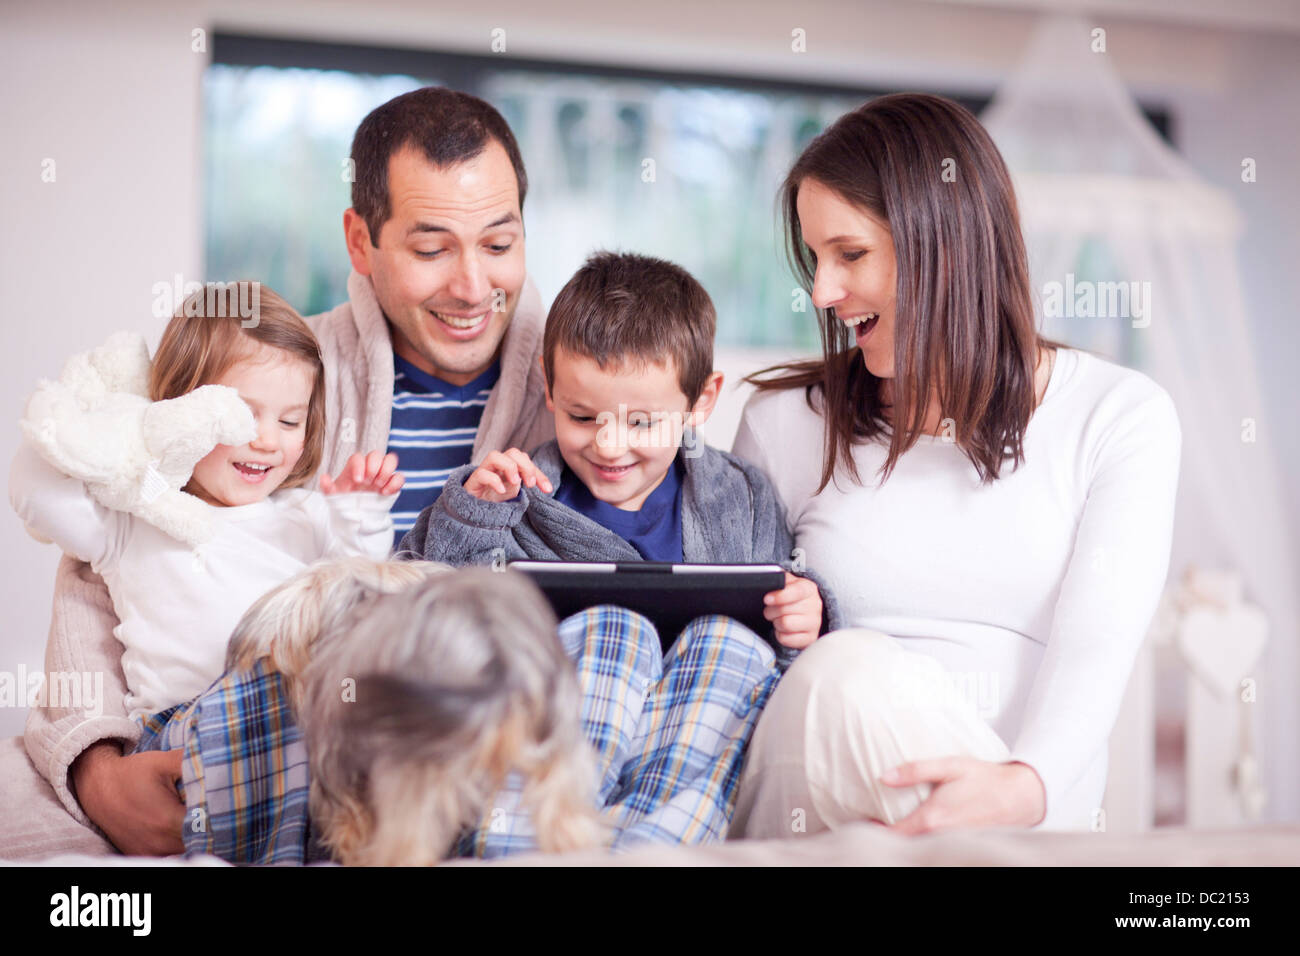 Parents, two children and dog looking at digital tablet - Stock Image